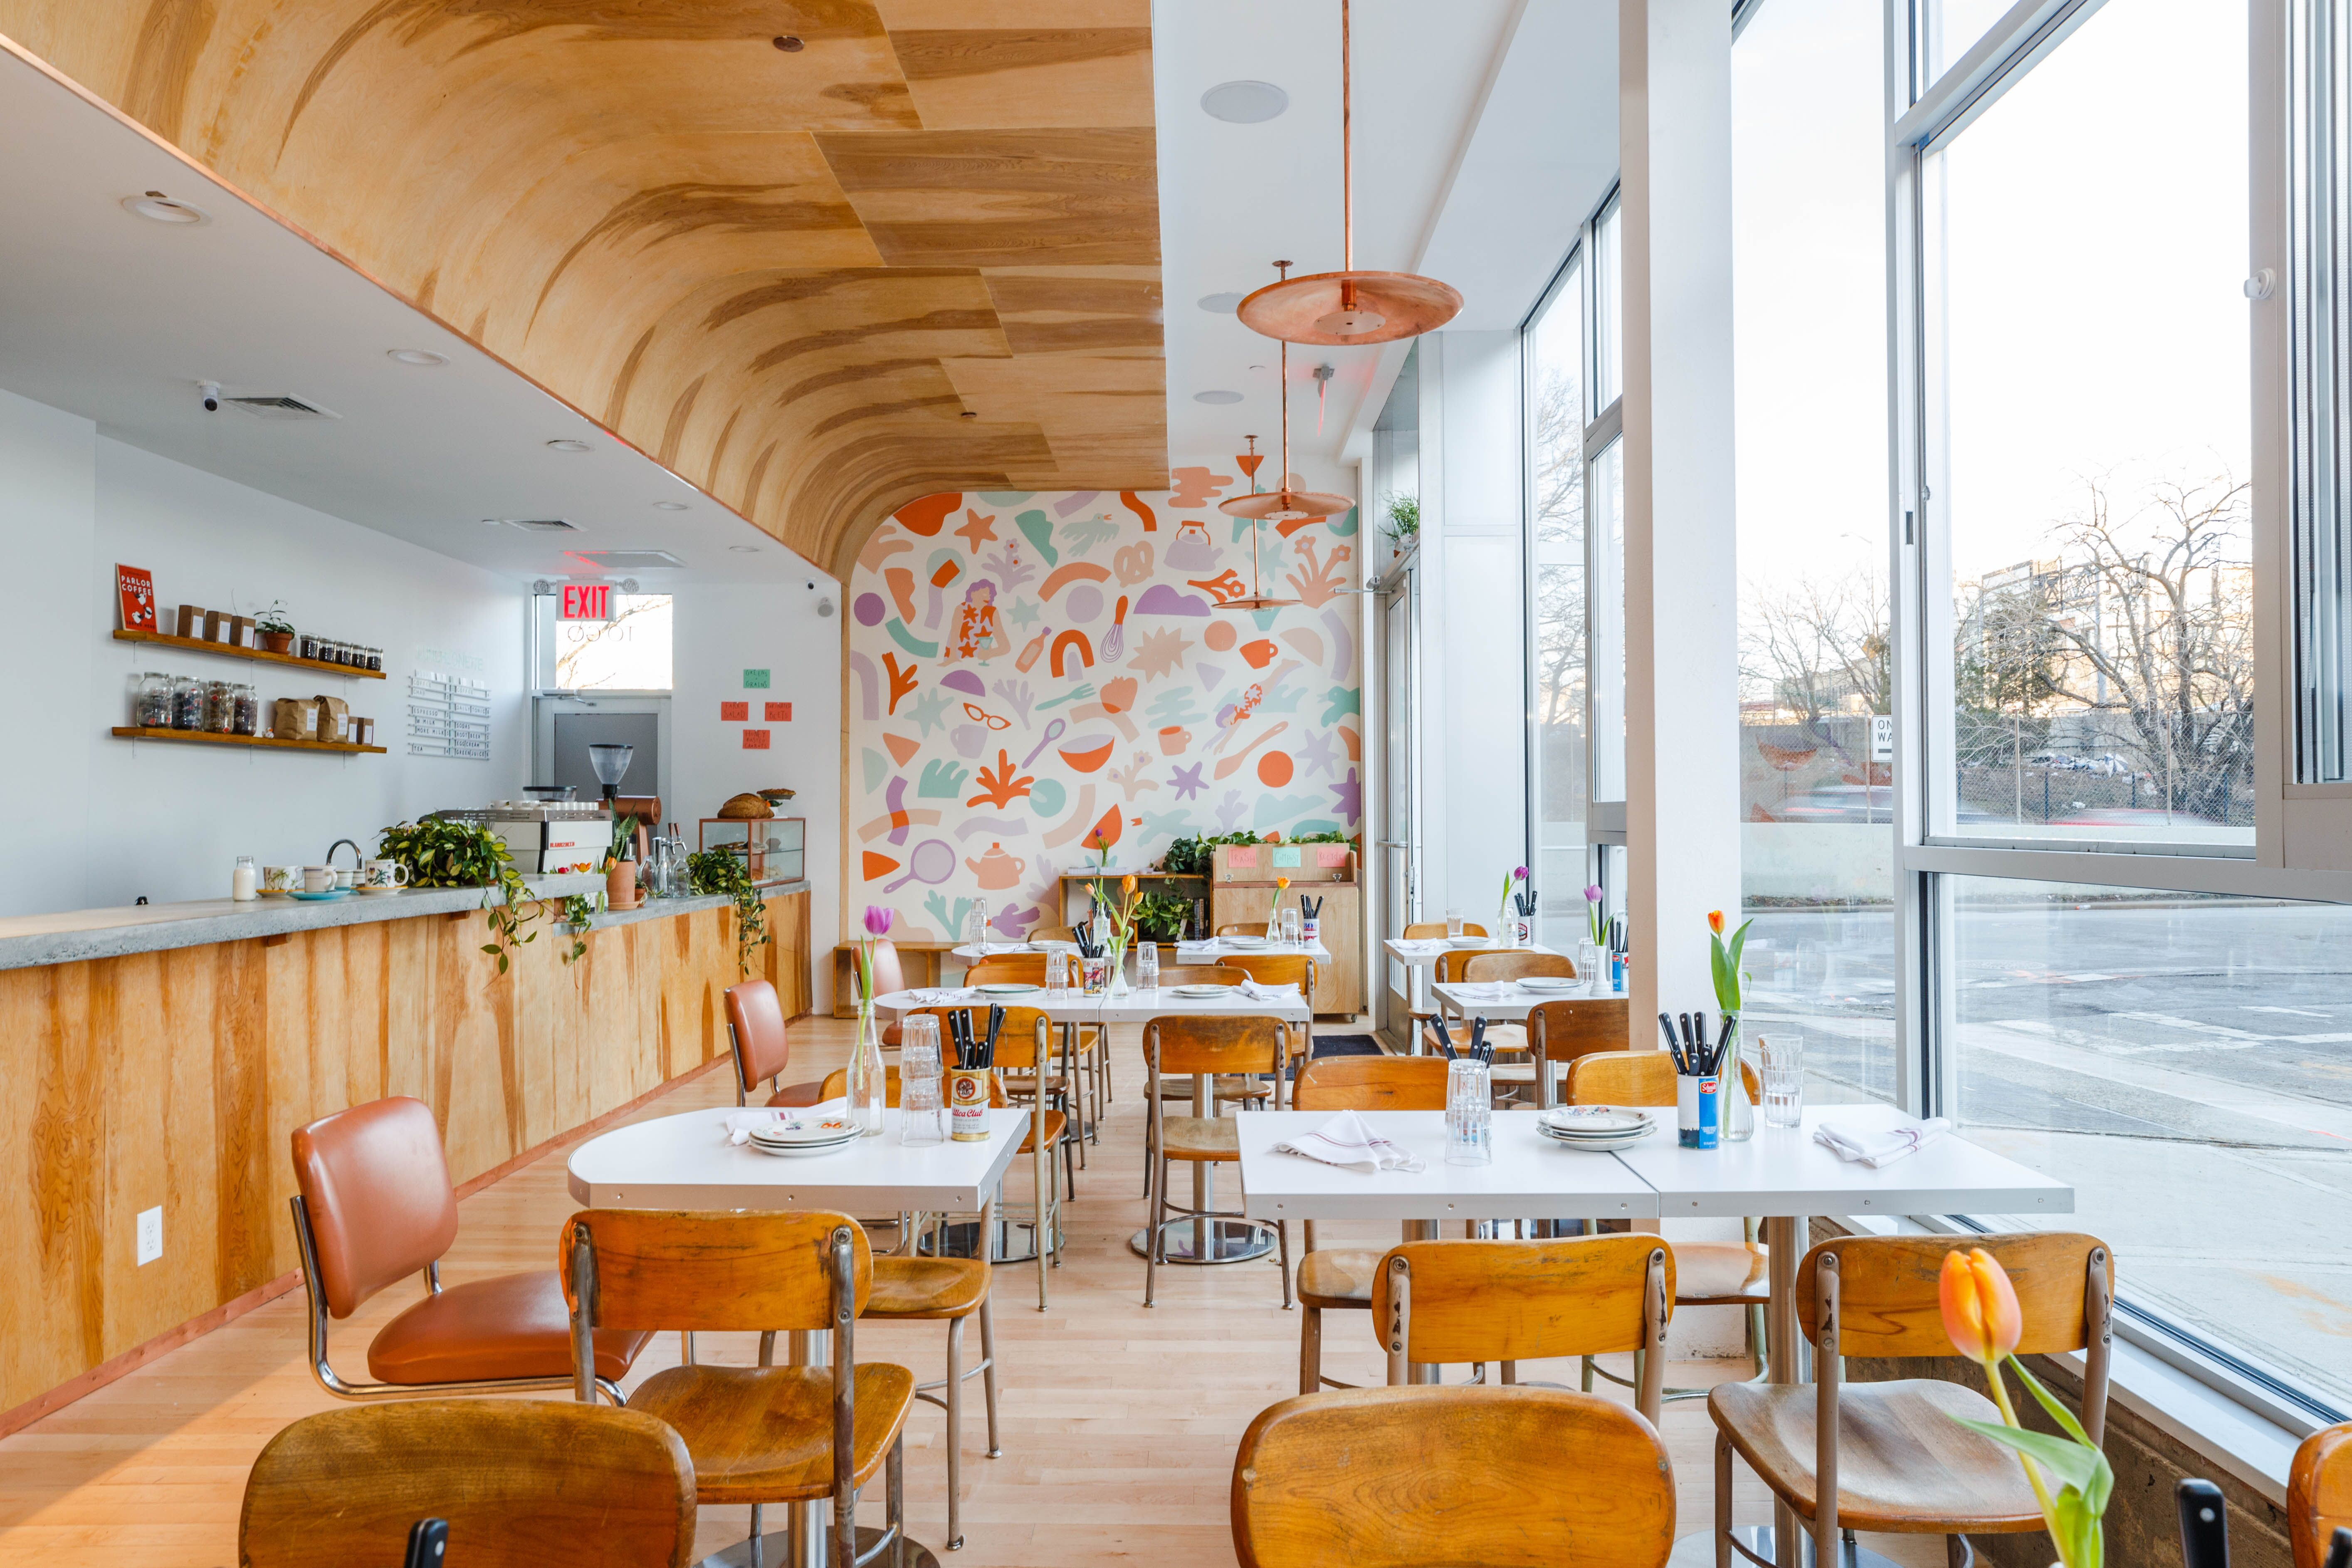 The interior at Gertie has windows on the left and a pastel-colored geometric mural on the back